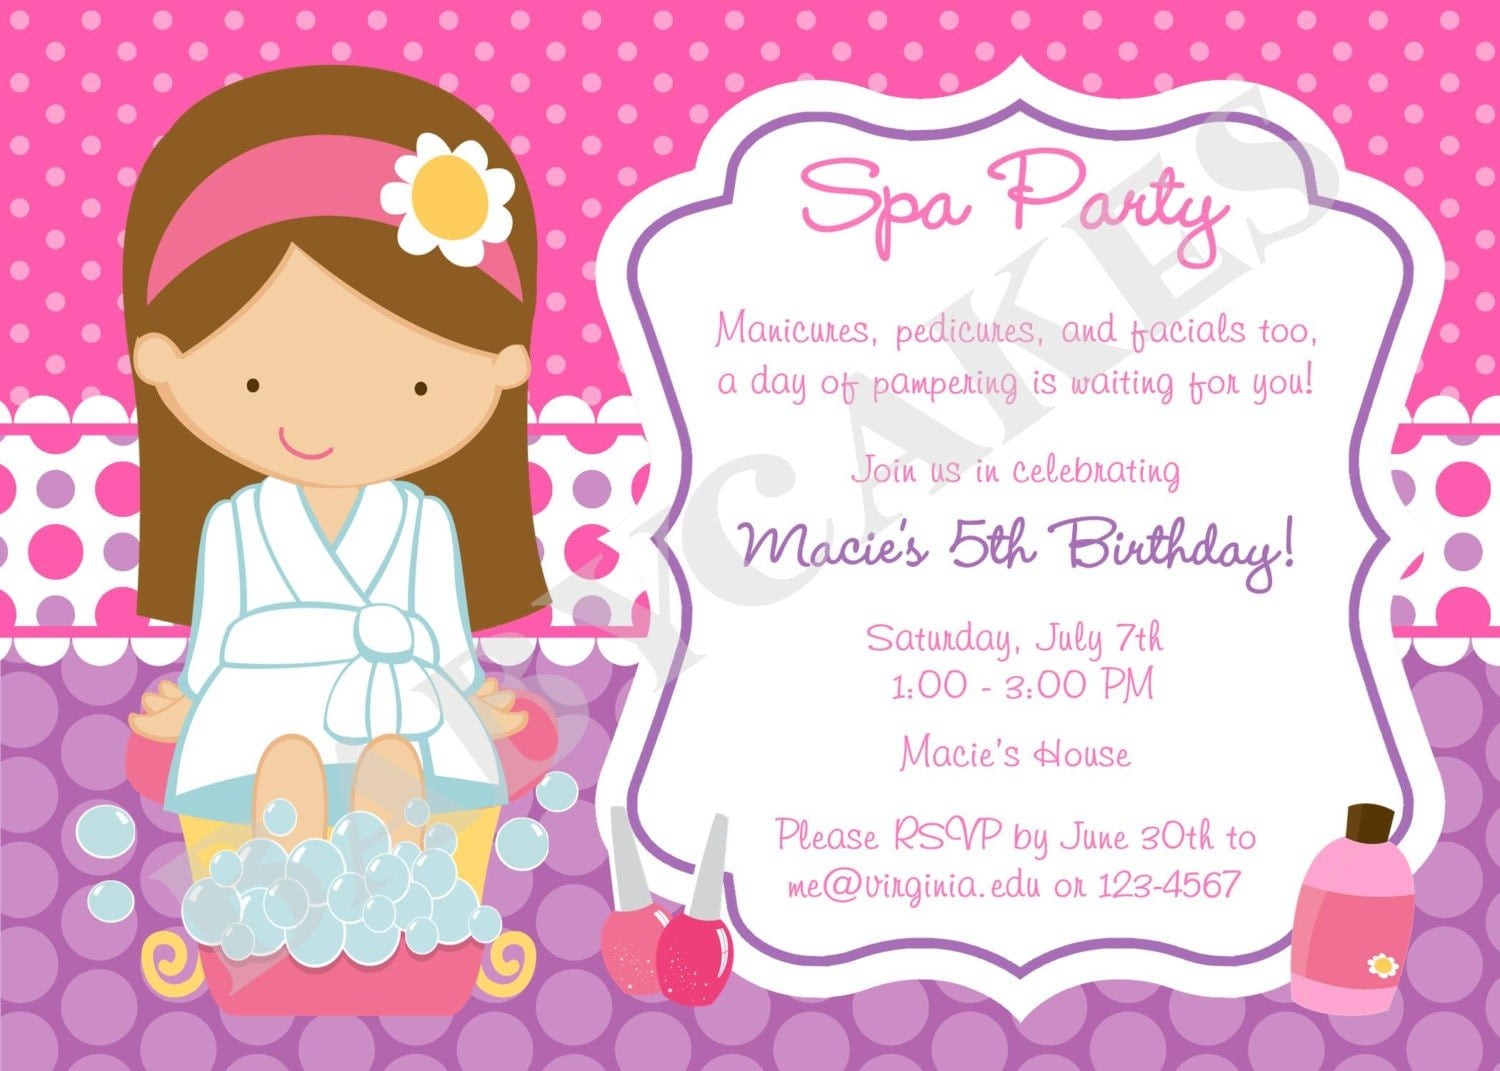 Mary kay invitation template best printable invitation design spa party birthday invitation invite spa birthday spa invite stopboris Choice Image